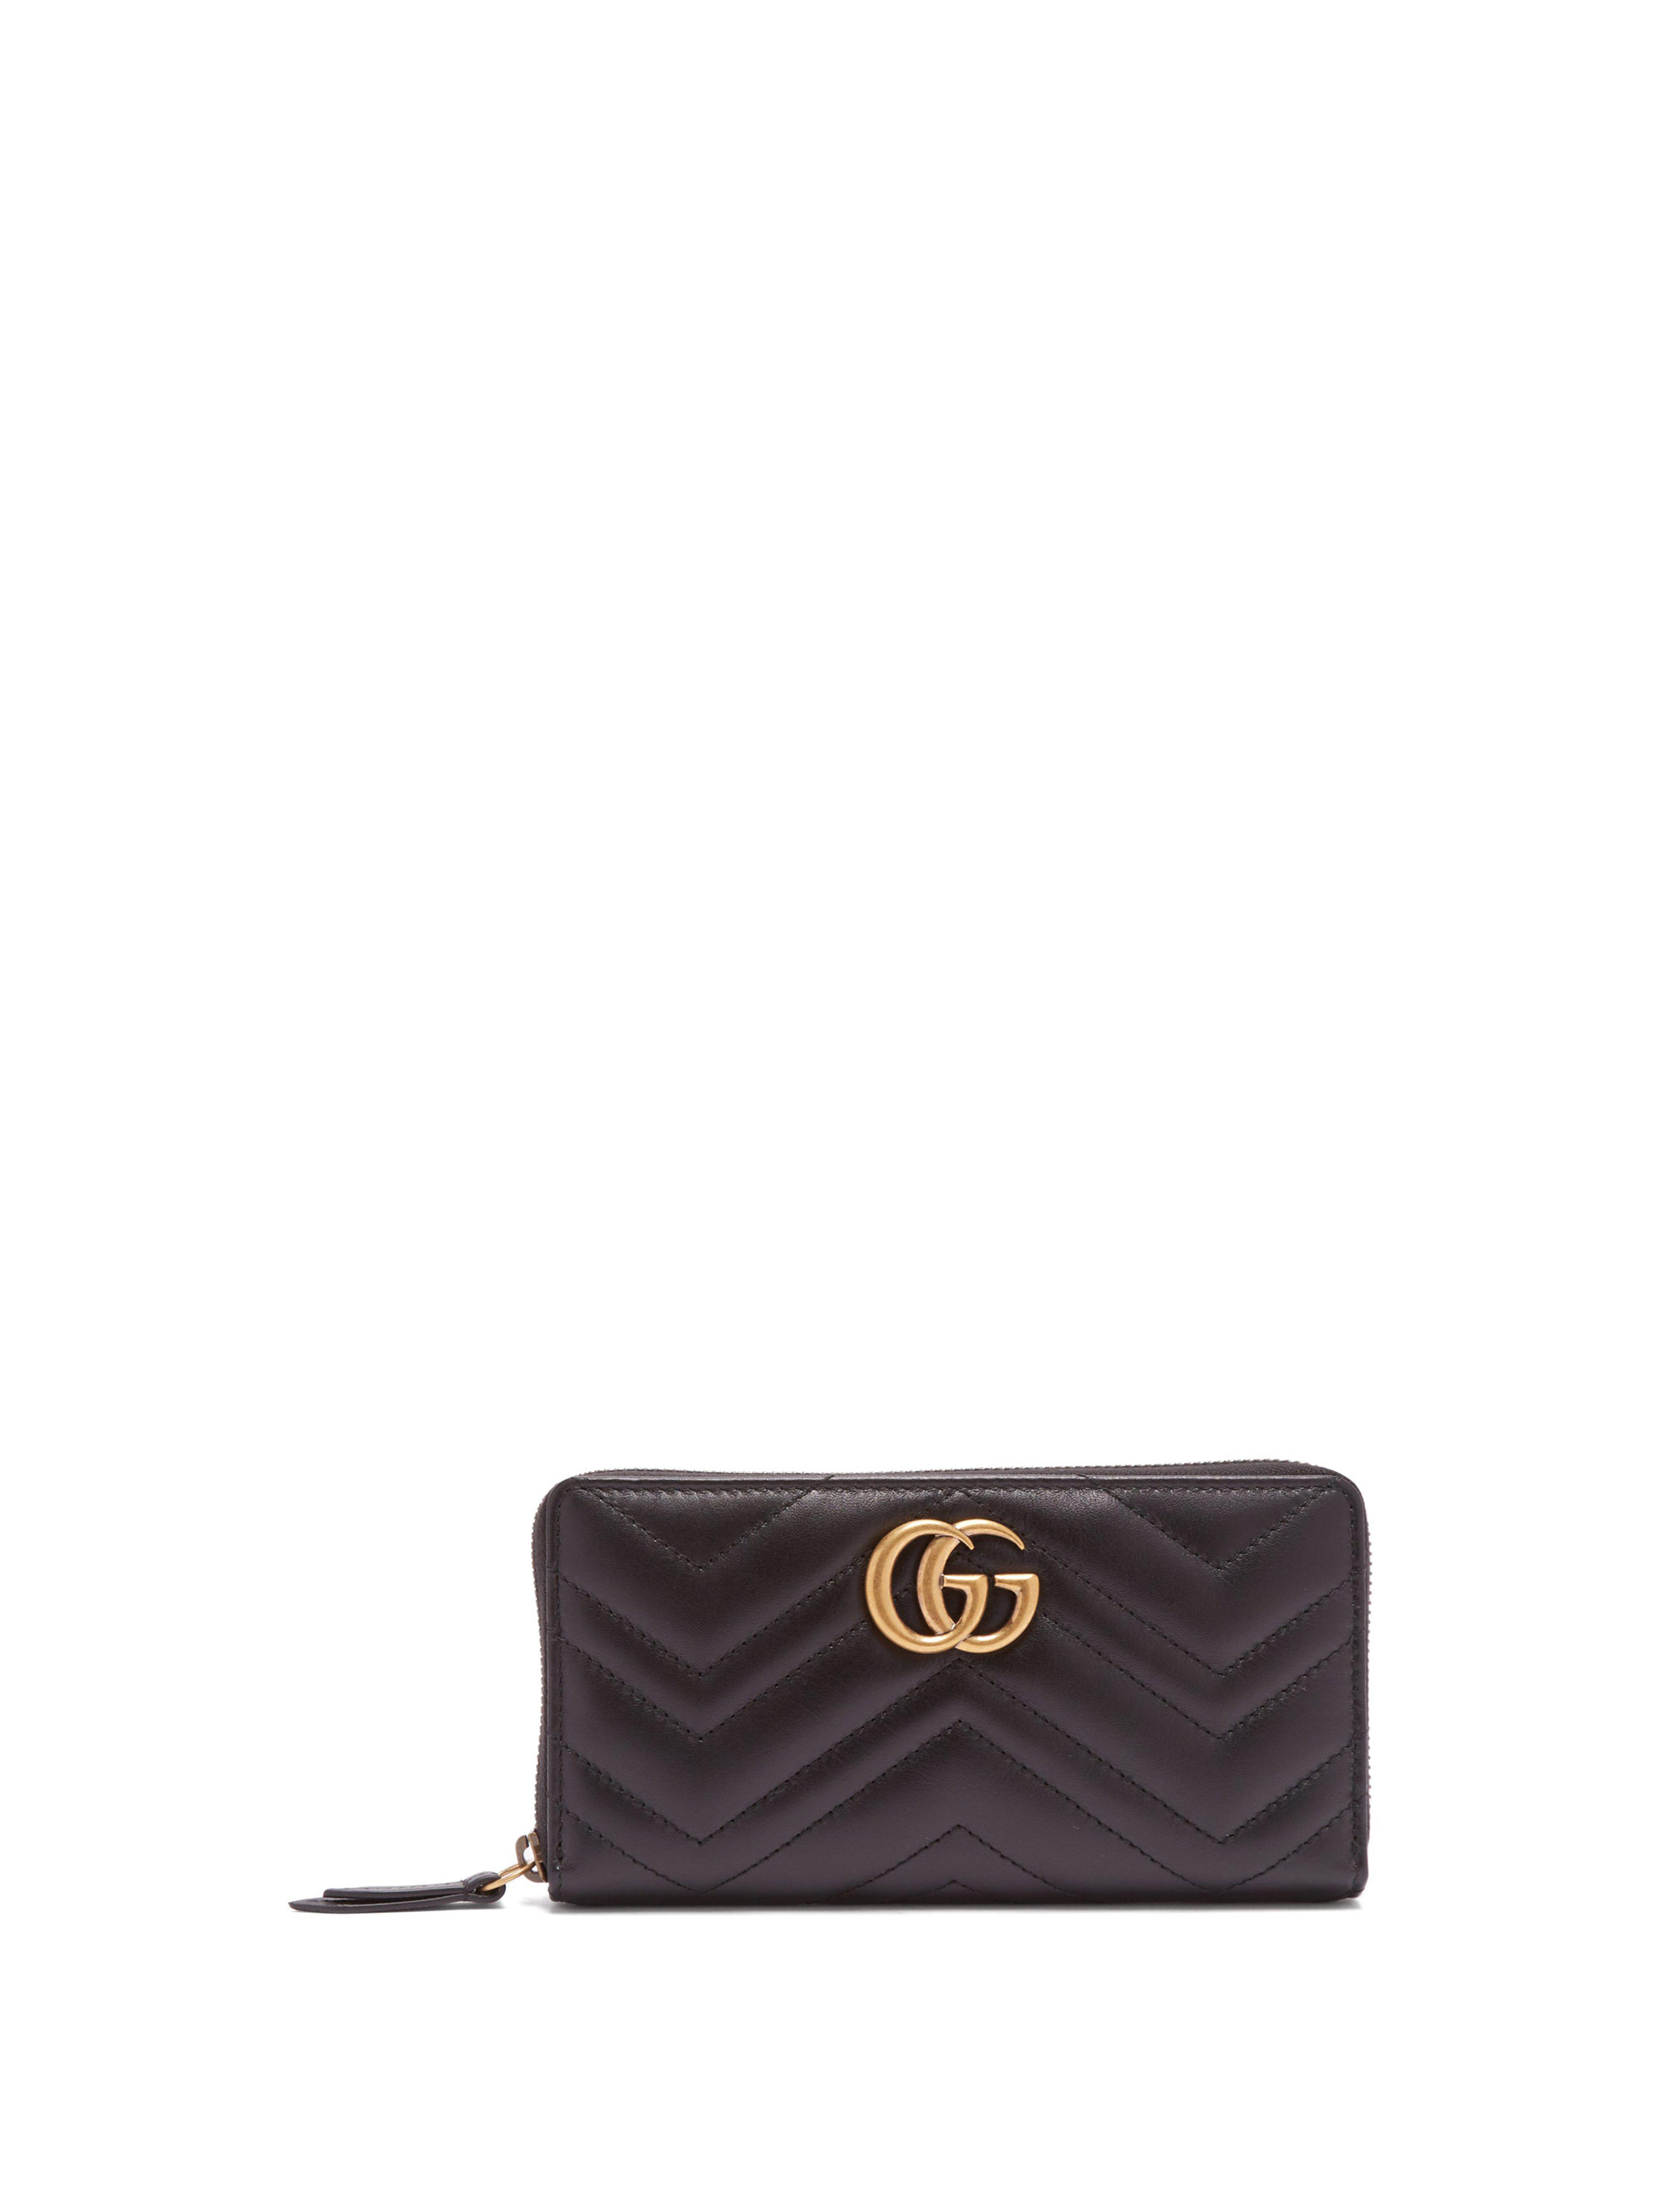 4f712f4ccc52 Gucci Gg Marmont Continental Wallet in Black - Lyst